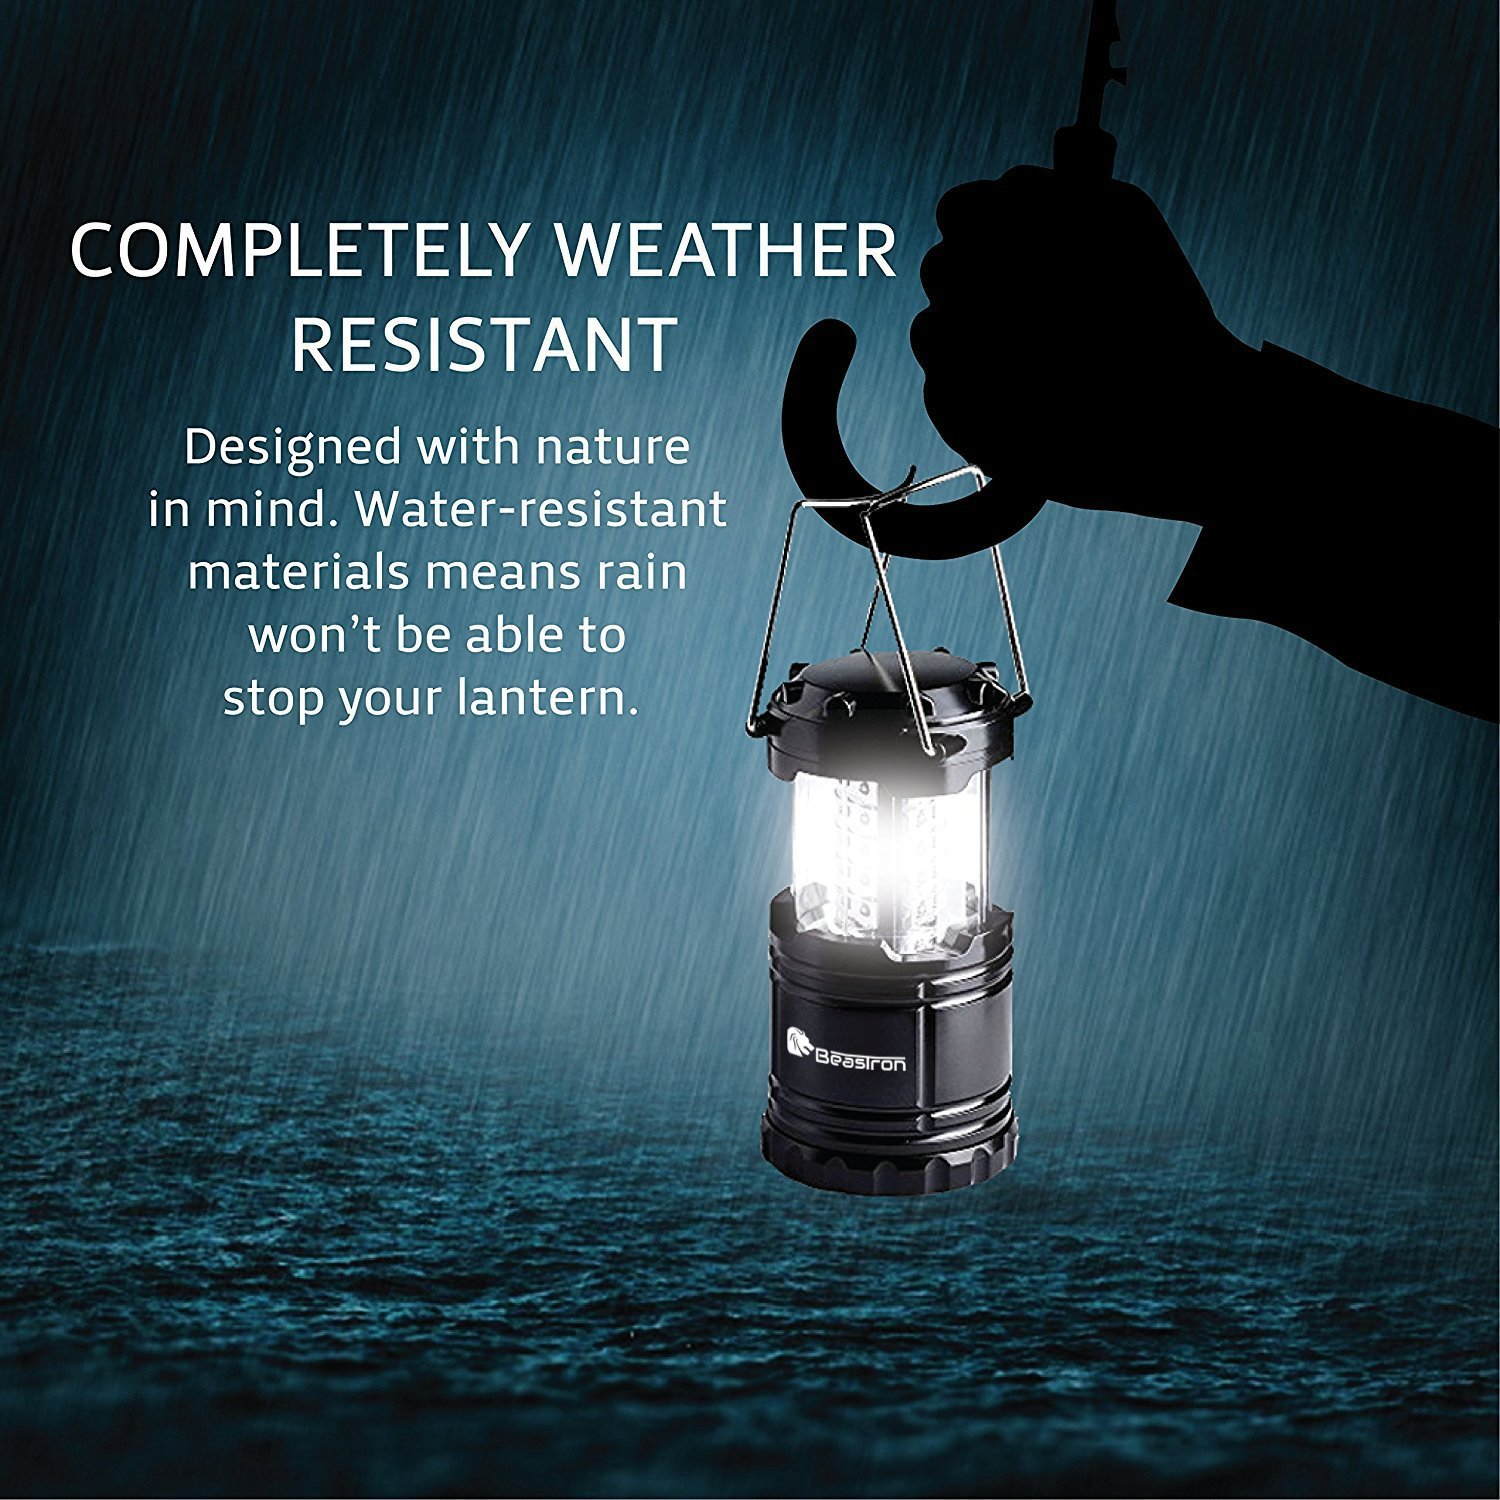 Hurricane Power Outage 2 Pack Black, Collapsible BEASTRON Portable LED Camping Lantern Flashlights with AA Batteries,Survival Kit for Emergency Light Storm CL-10 CyberVision Electronics Inc Outage  Outdoor Portable Lanterns